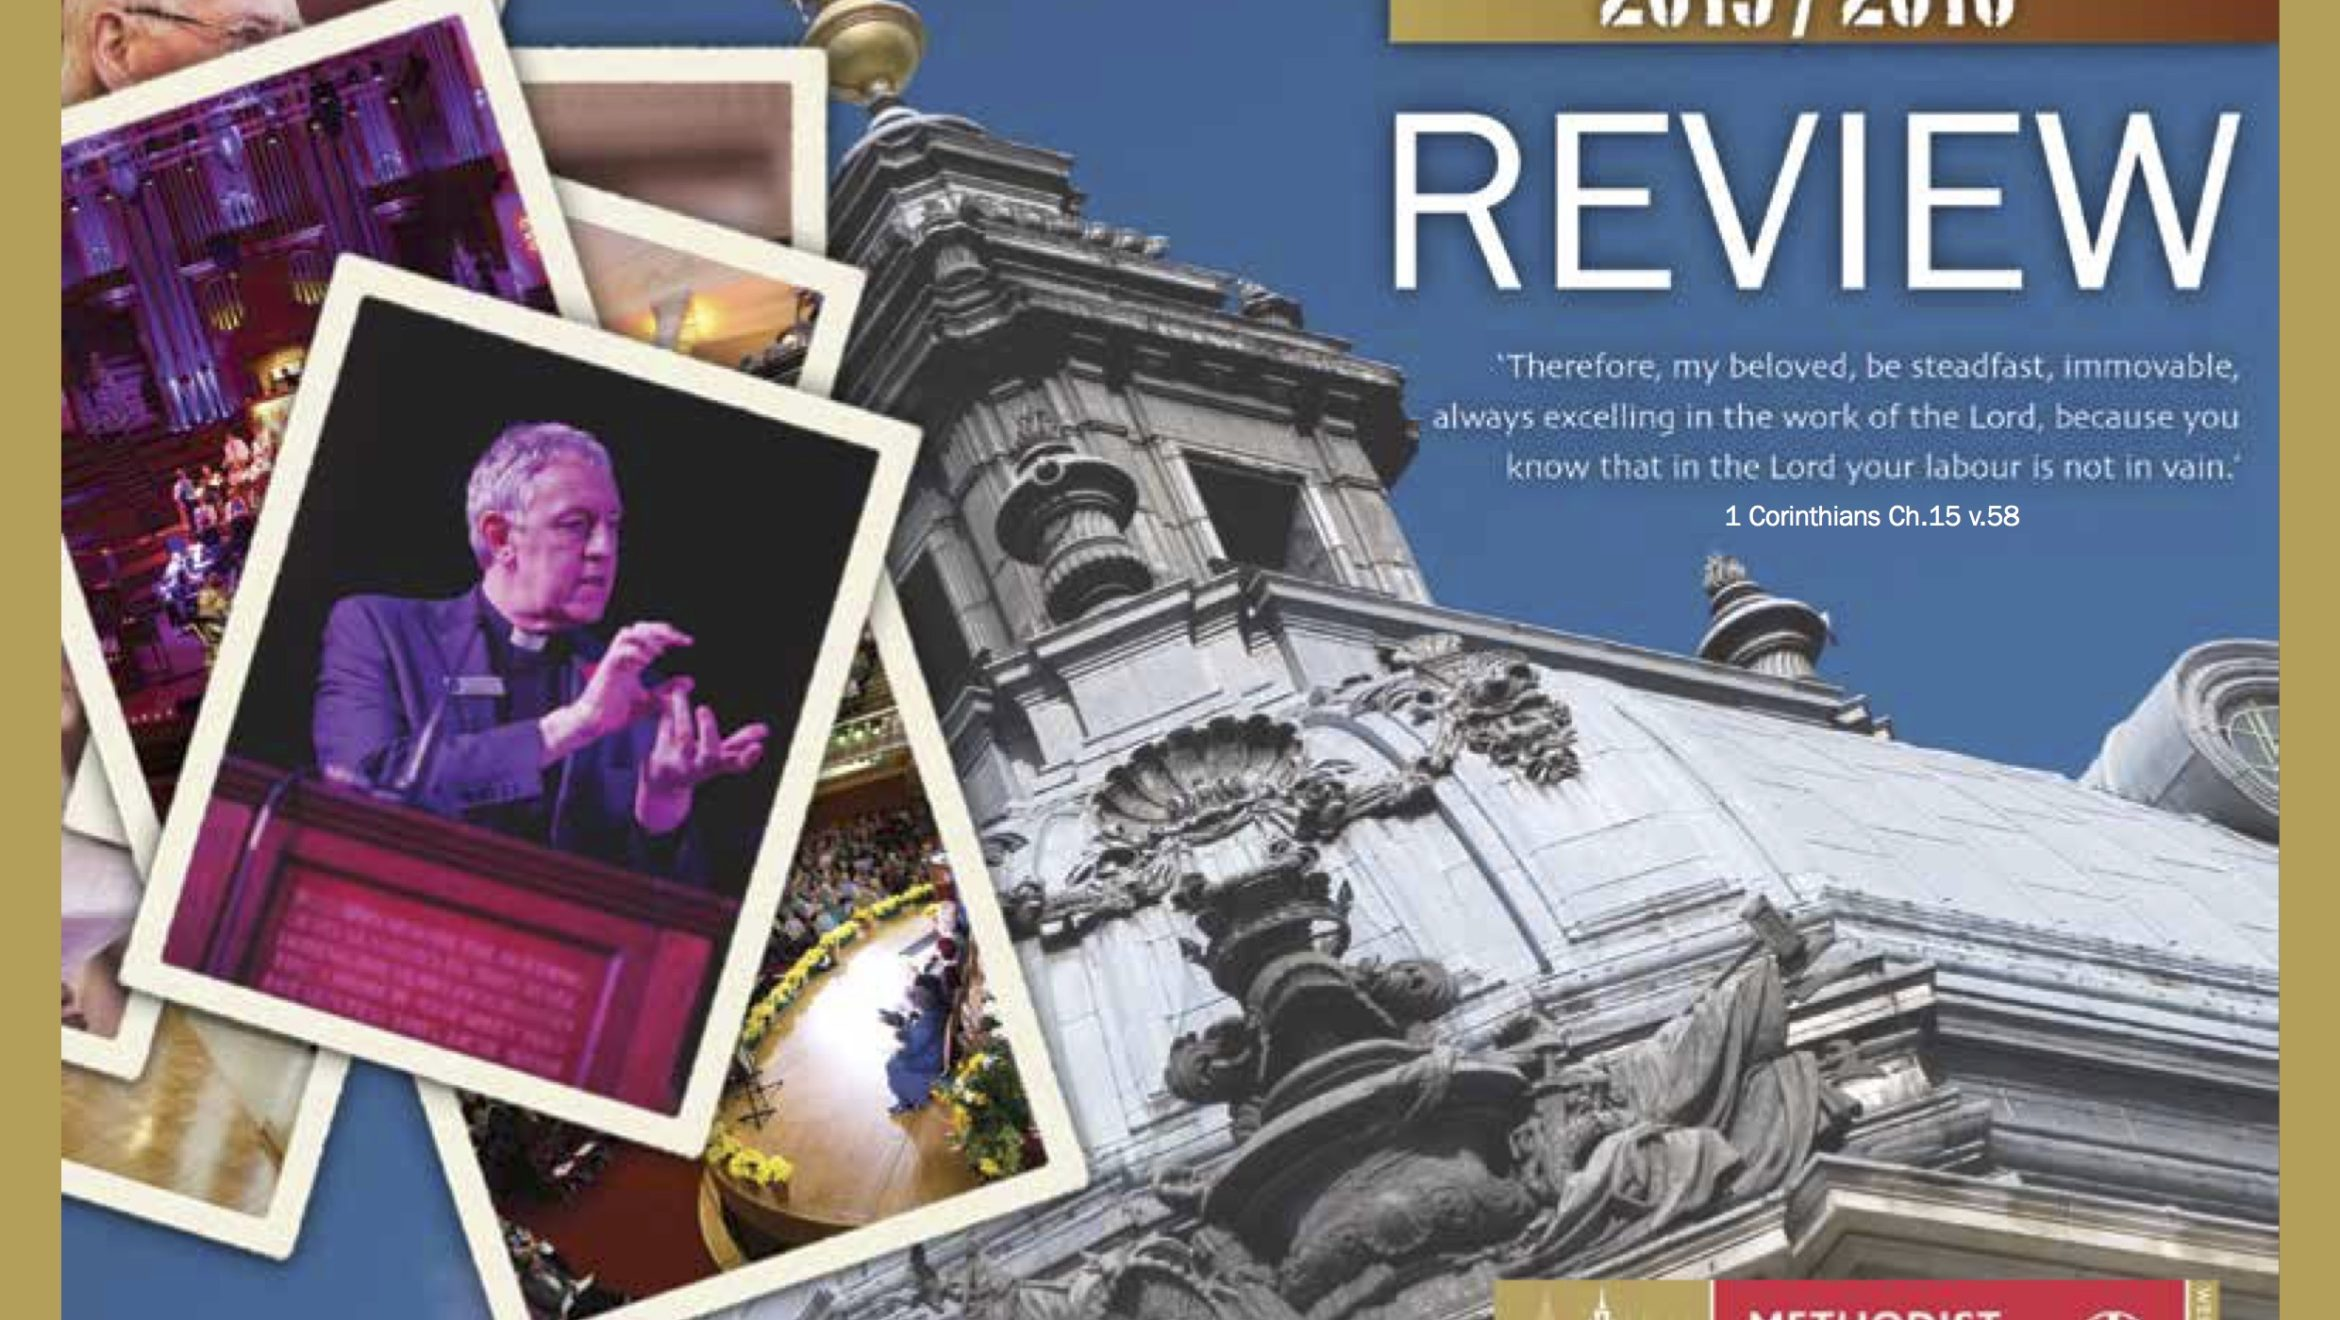 Methodist Central Hall, Westminster – Annual Review